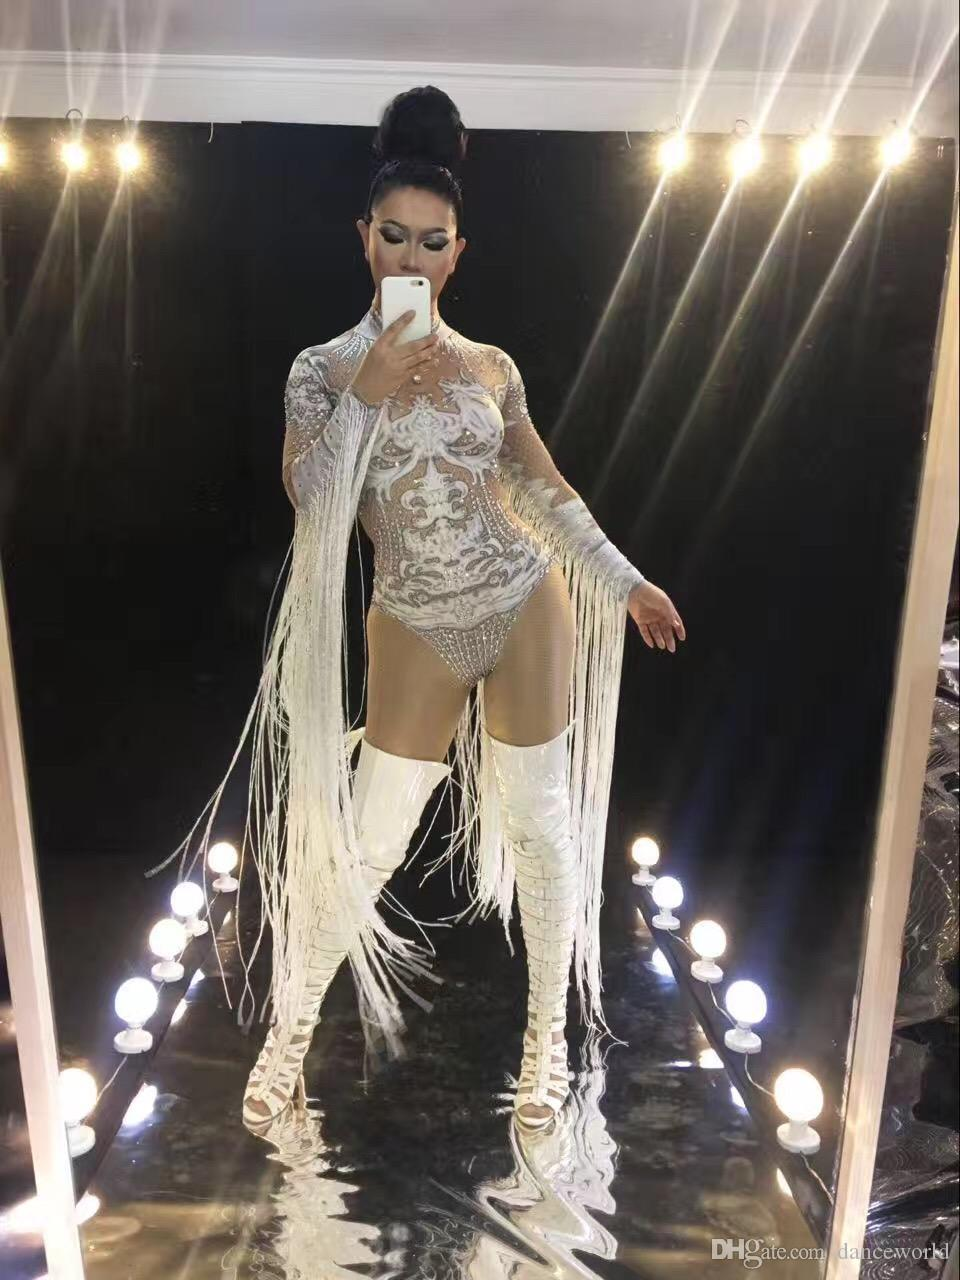 Nude Sexy Tassel Bodysuit Cosplay White Costume Rhinestones Outfit Performance Women's Stage Clothing Show Party Dance Wear